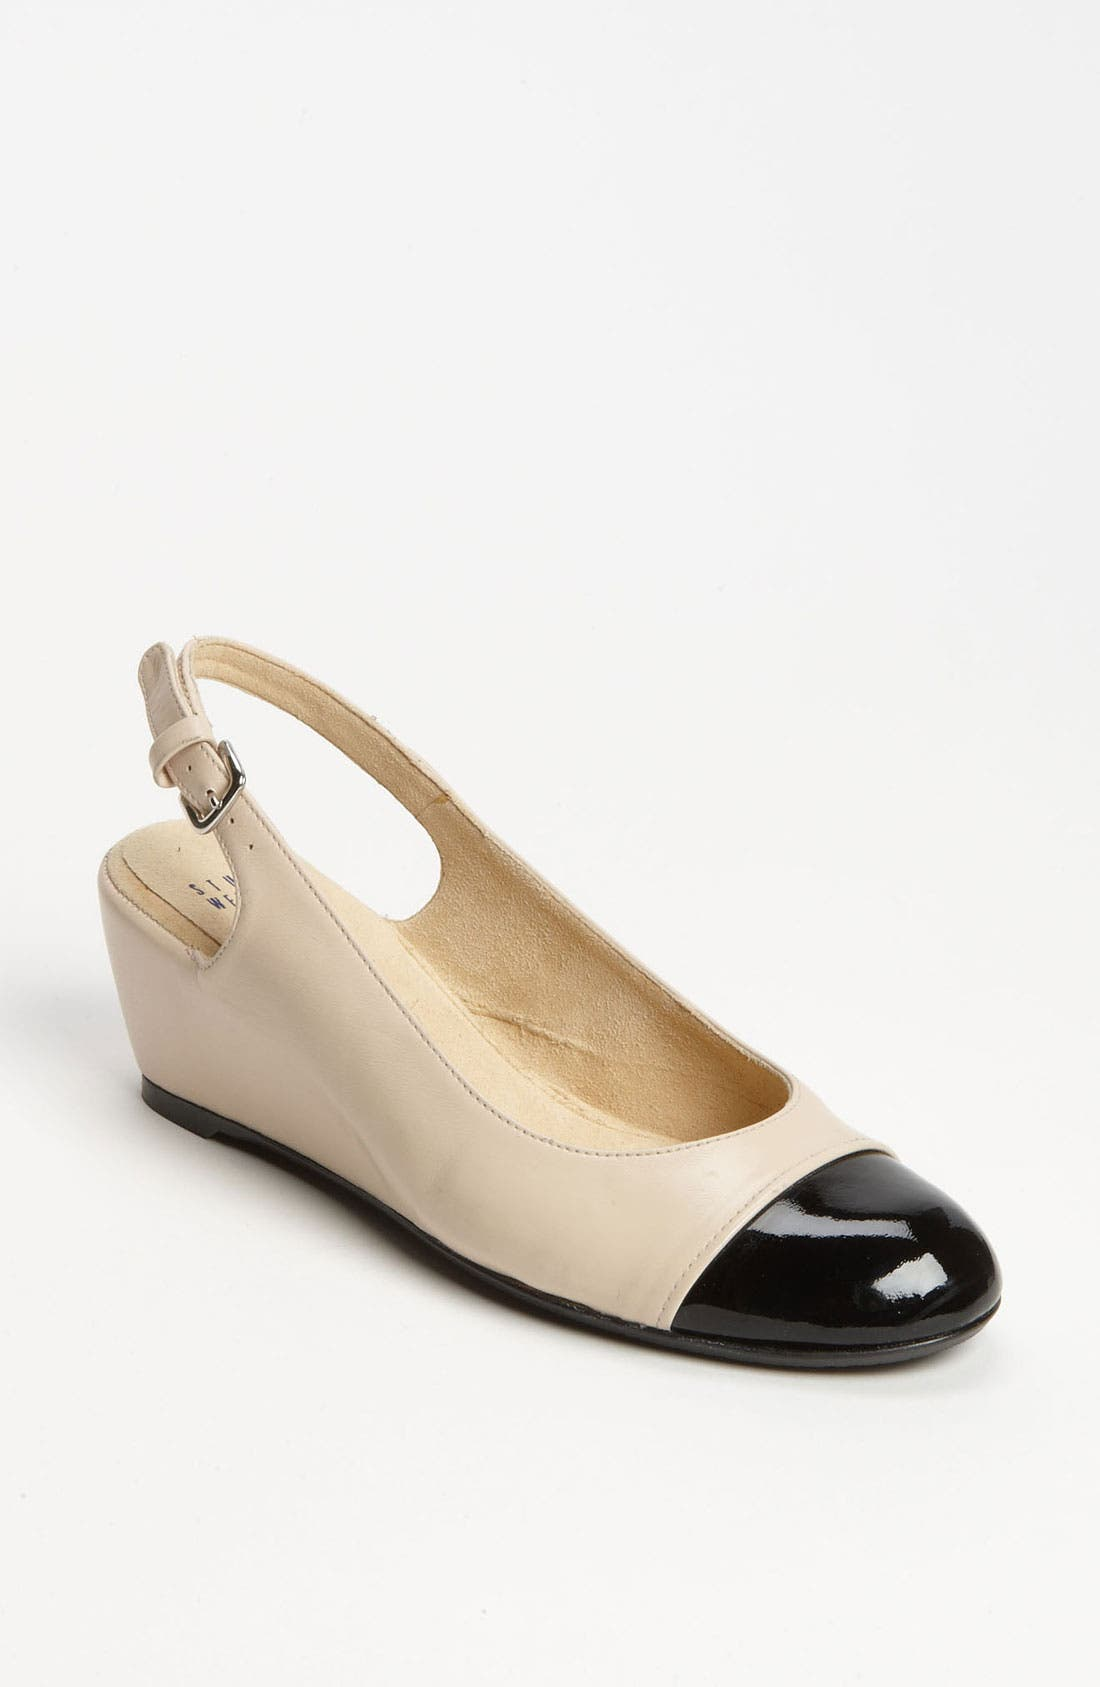 Alternate Image 1 Selected - Stuart Weitzman 'Tipin' Pump